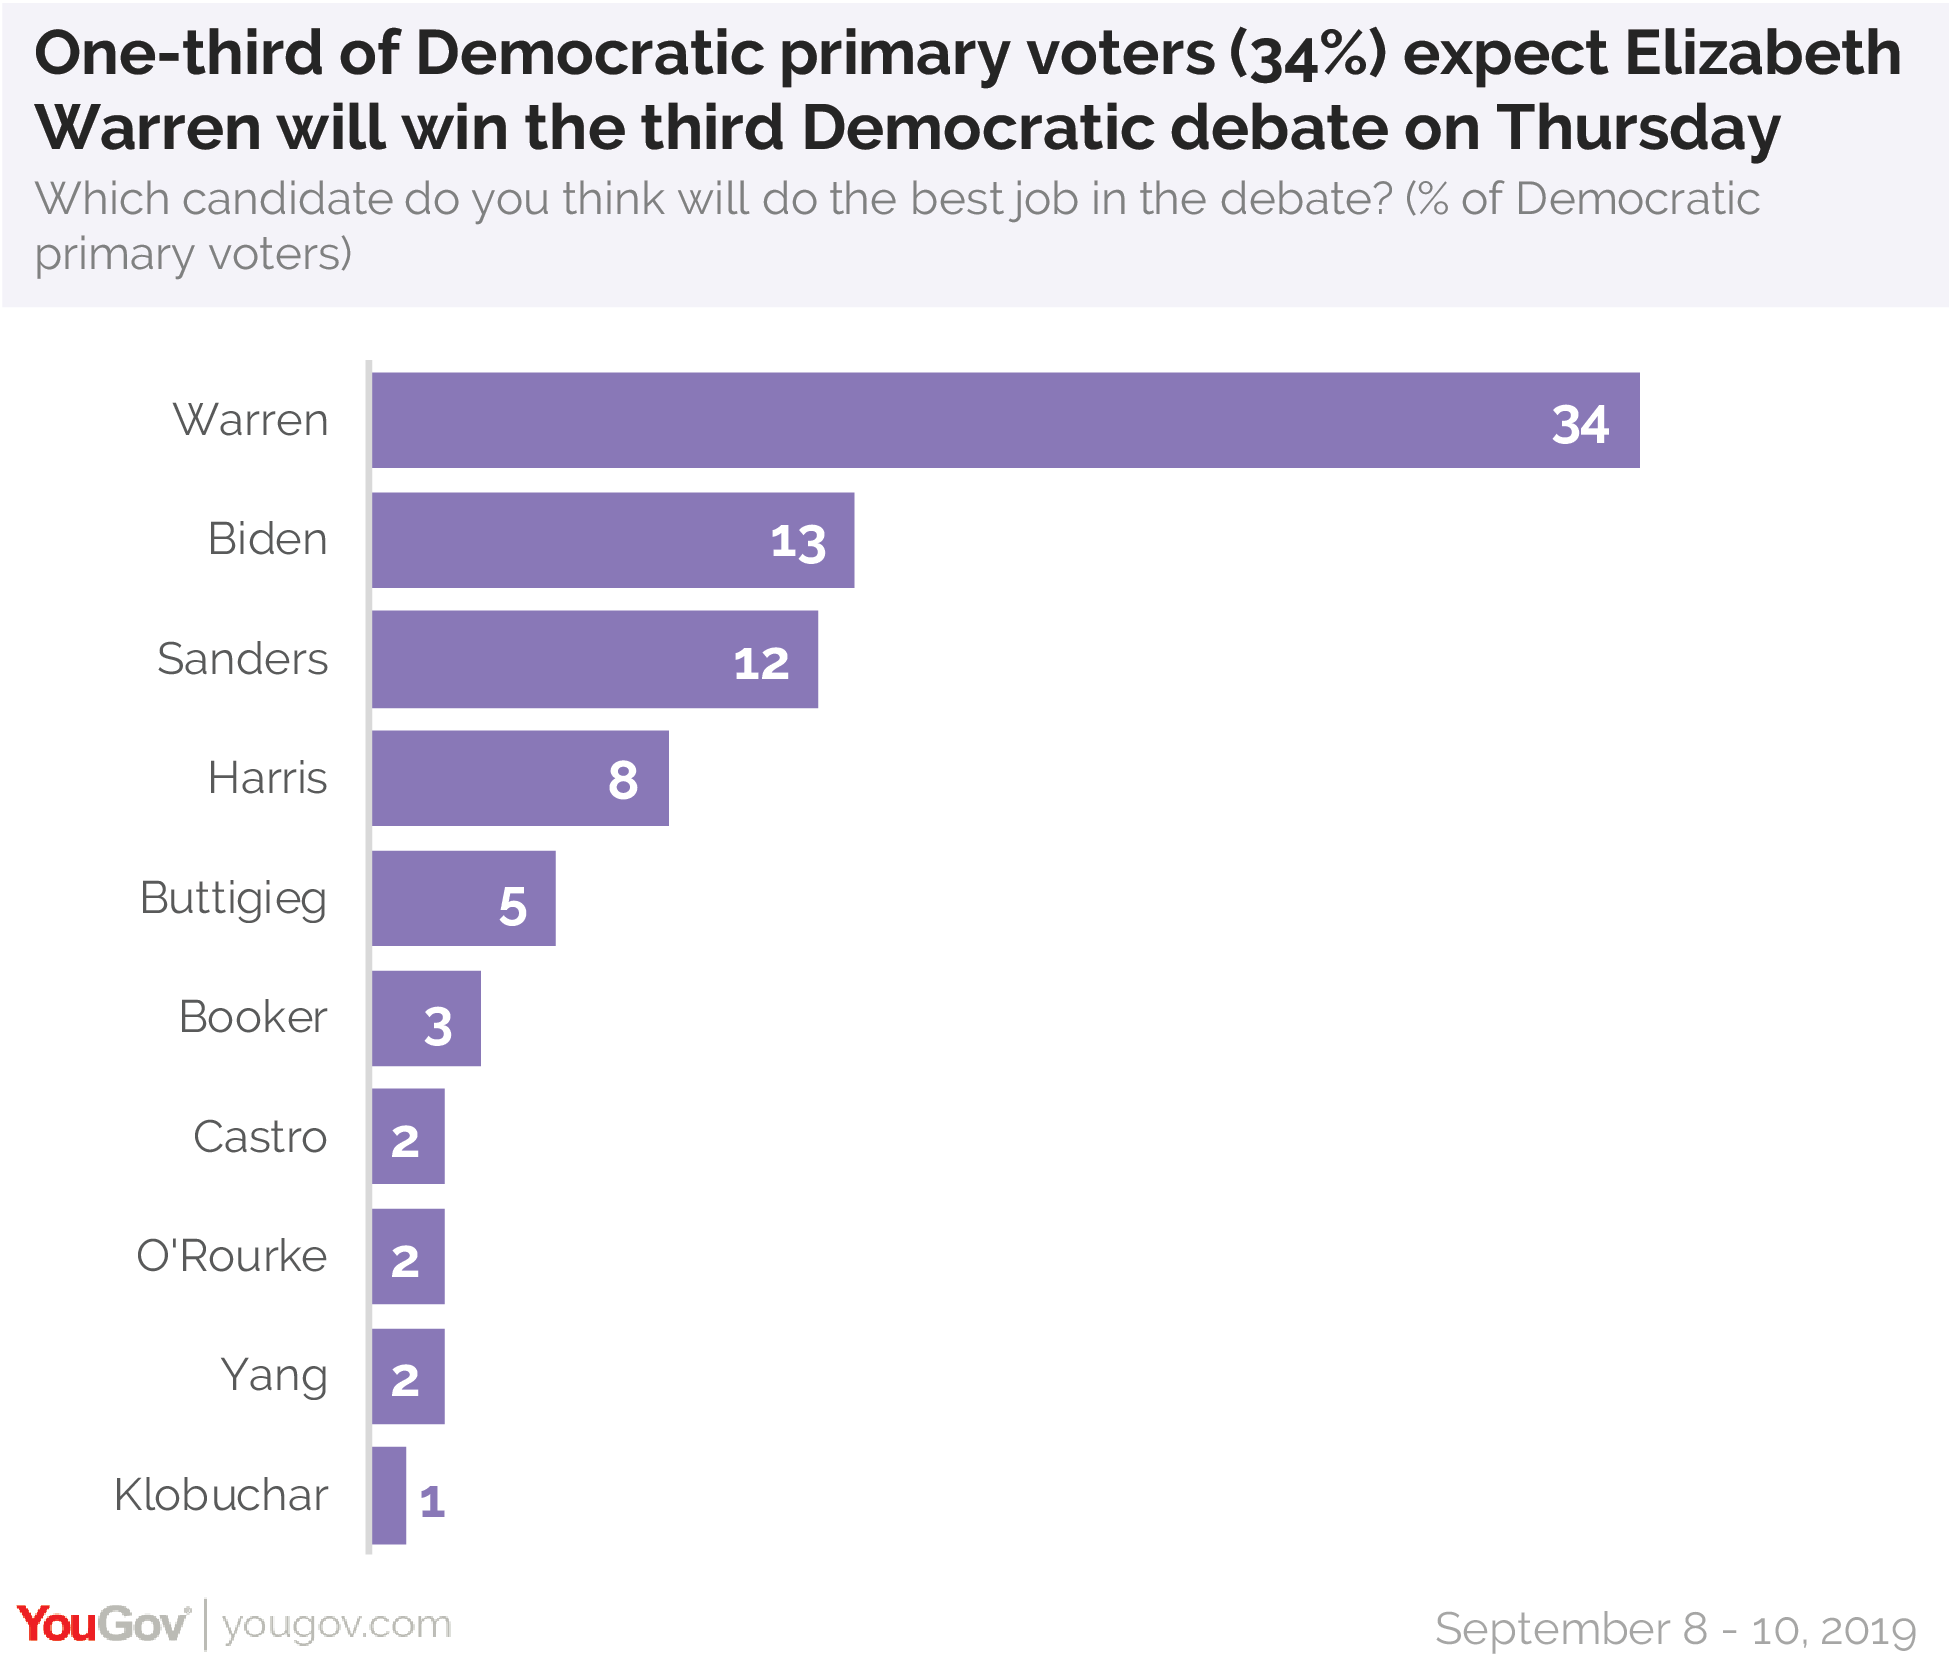 One-third of Democratic primary votes expect Elizabeth Warren will win the third Democratic debate on Thursday